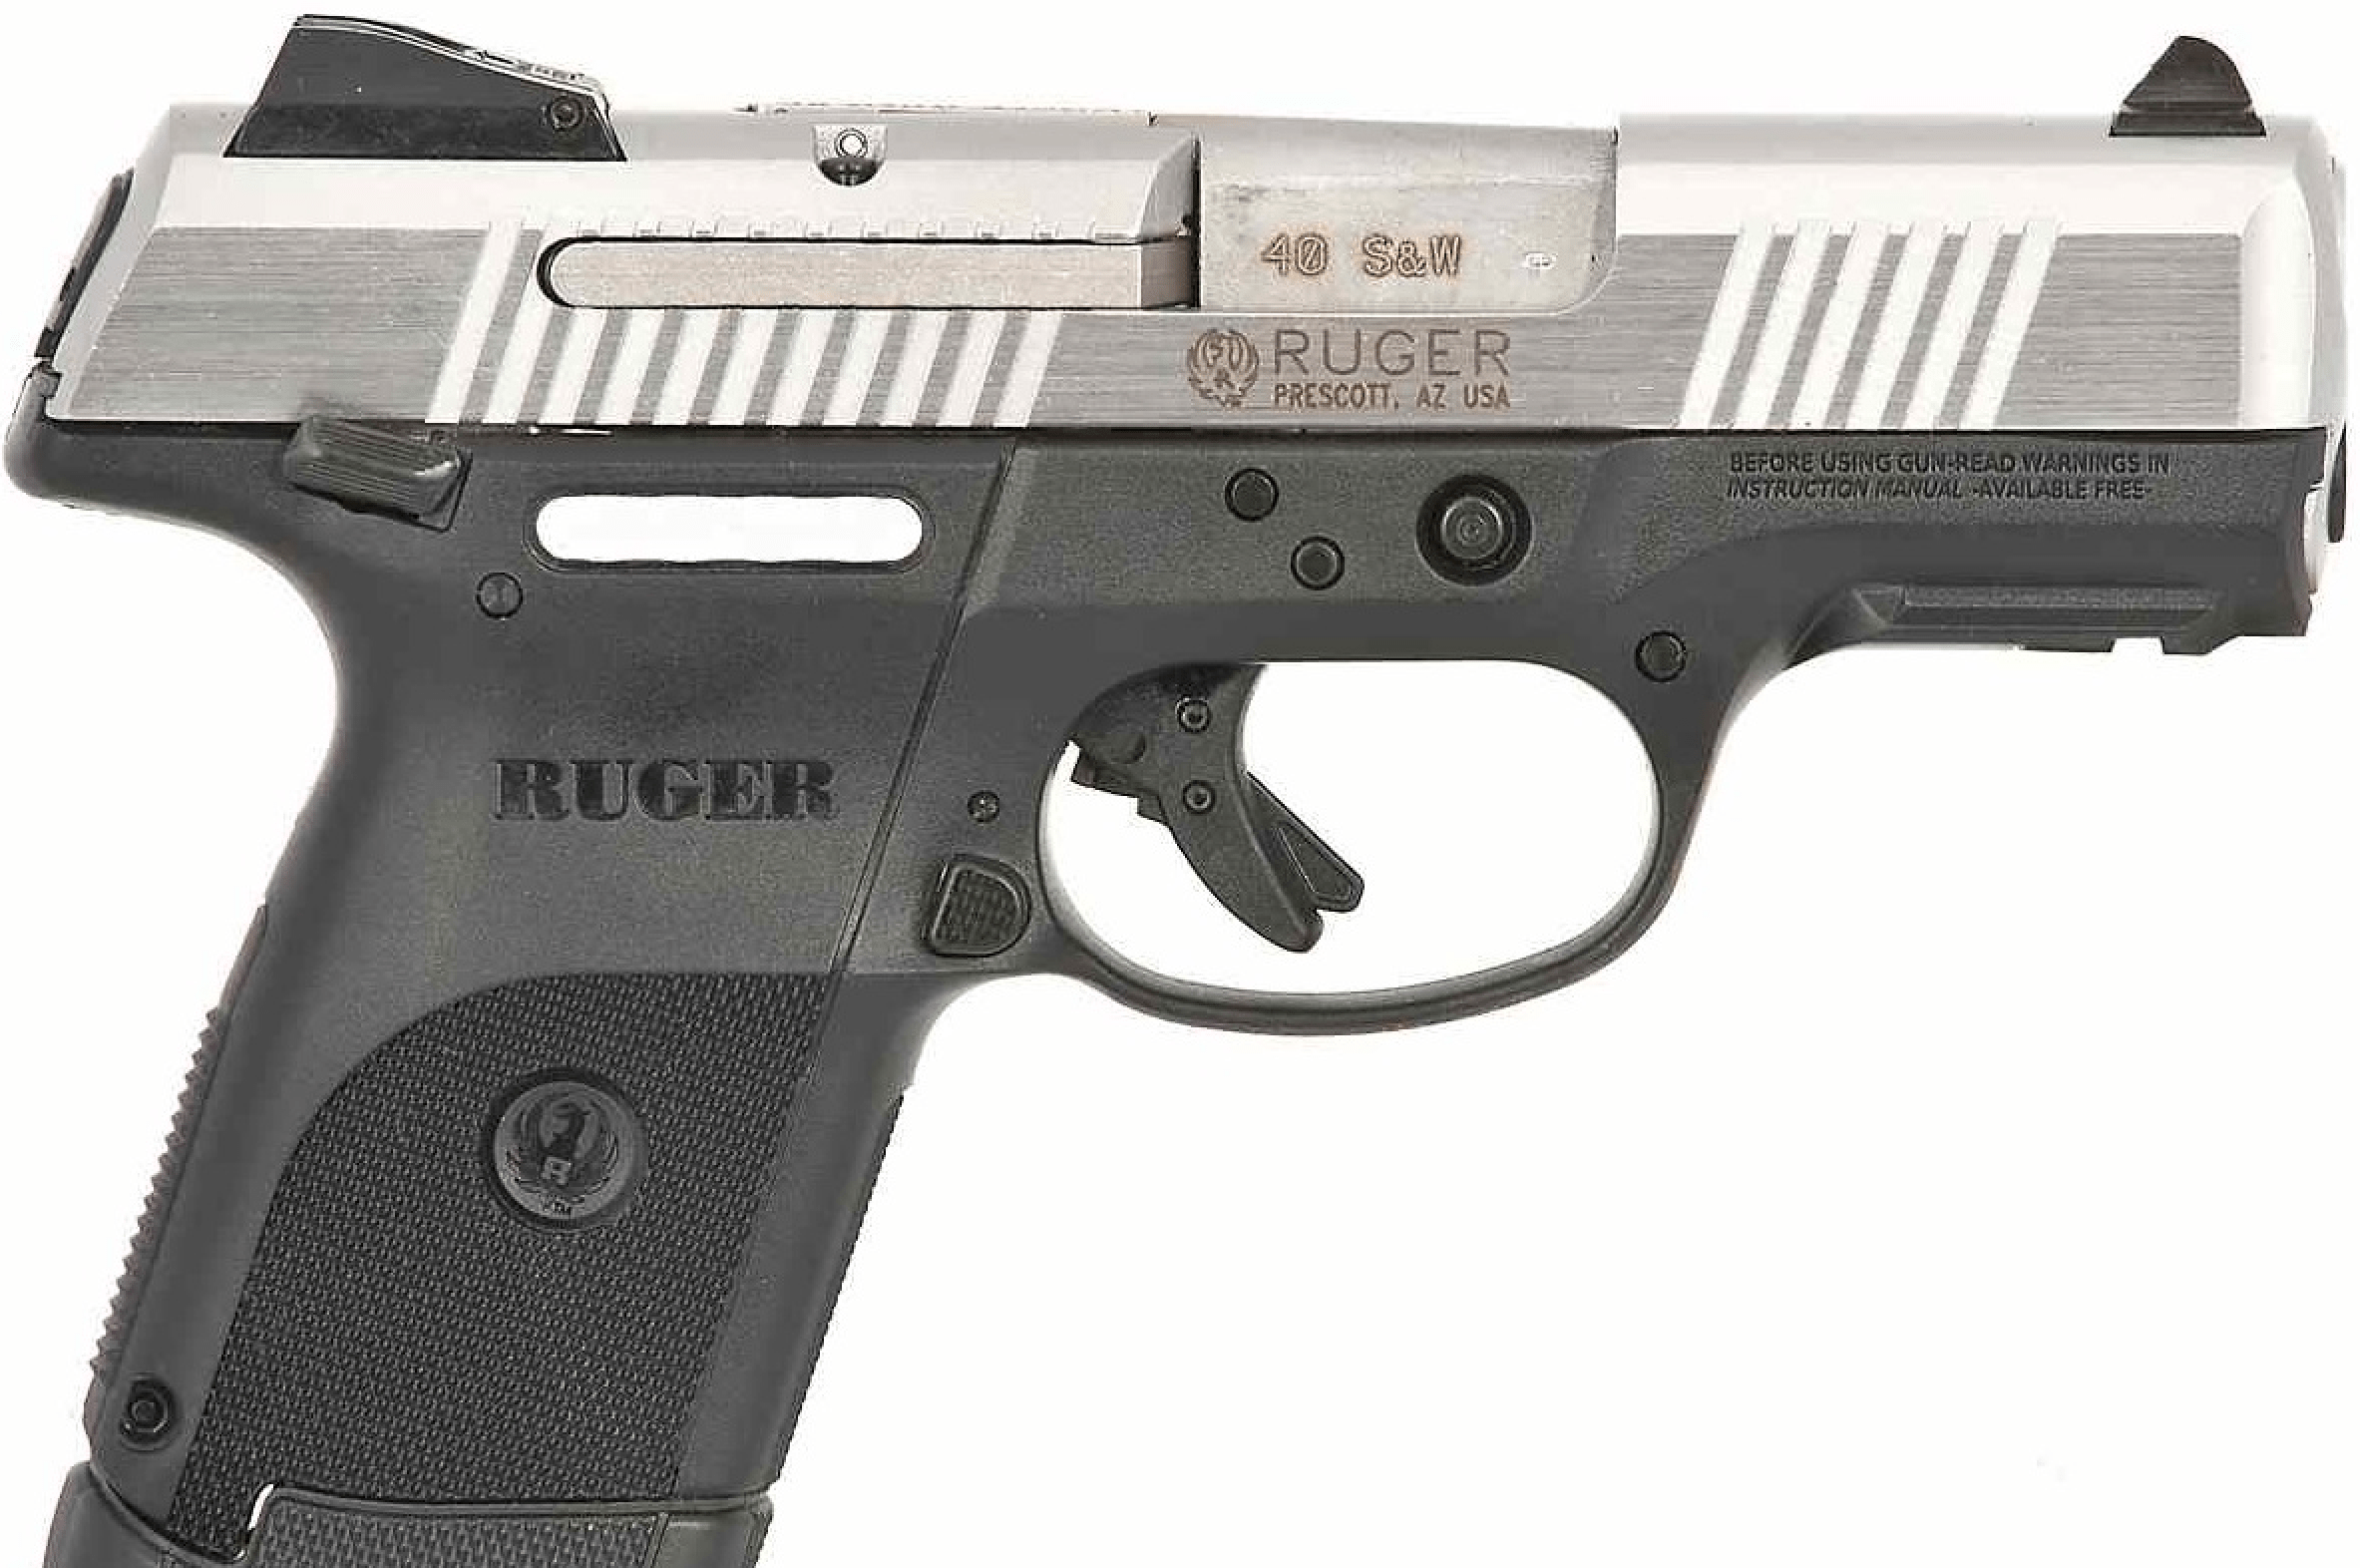 The Ruger Sr40c The Most Dangerous Handgun On The Planet